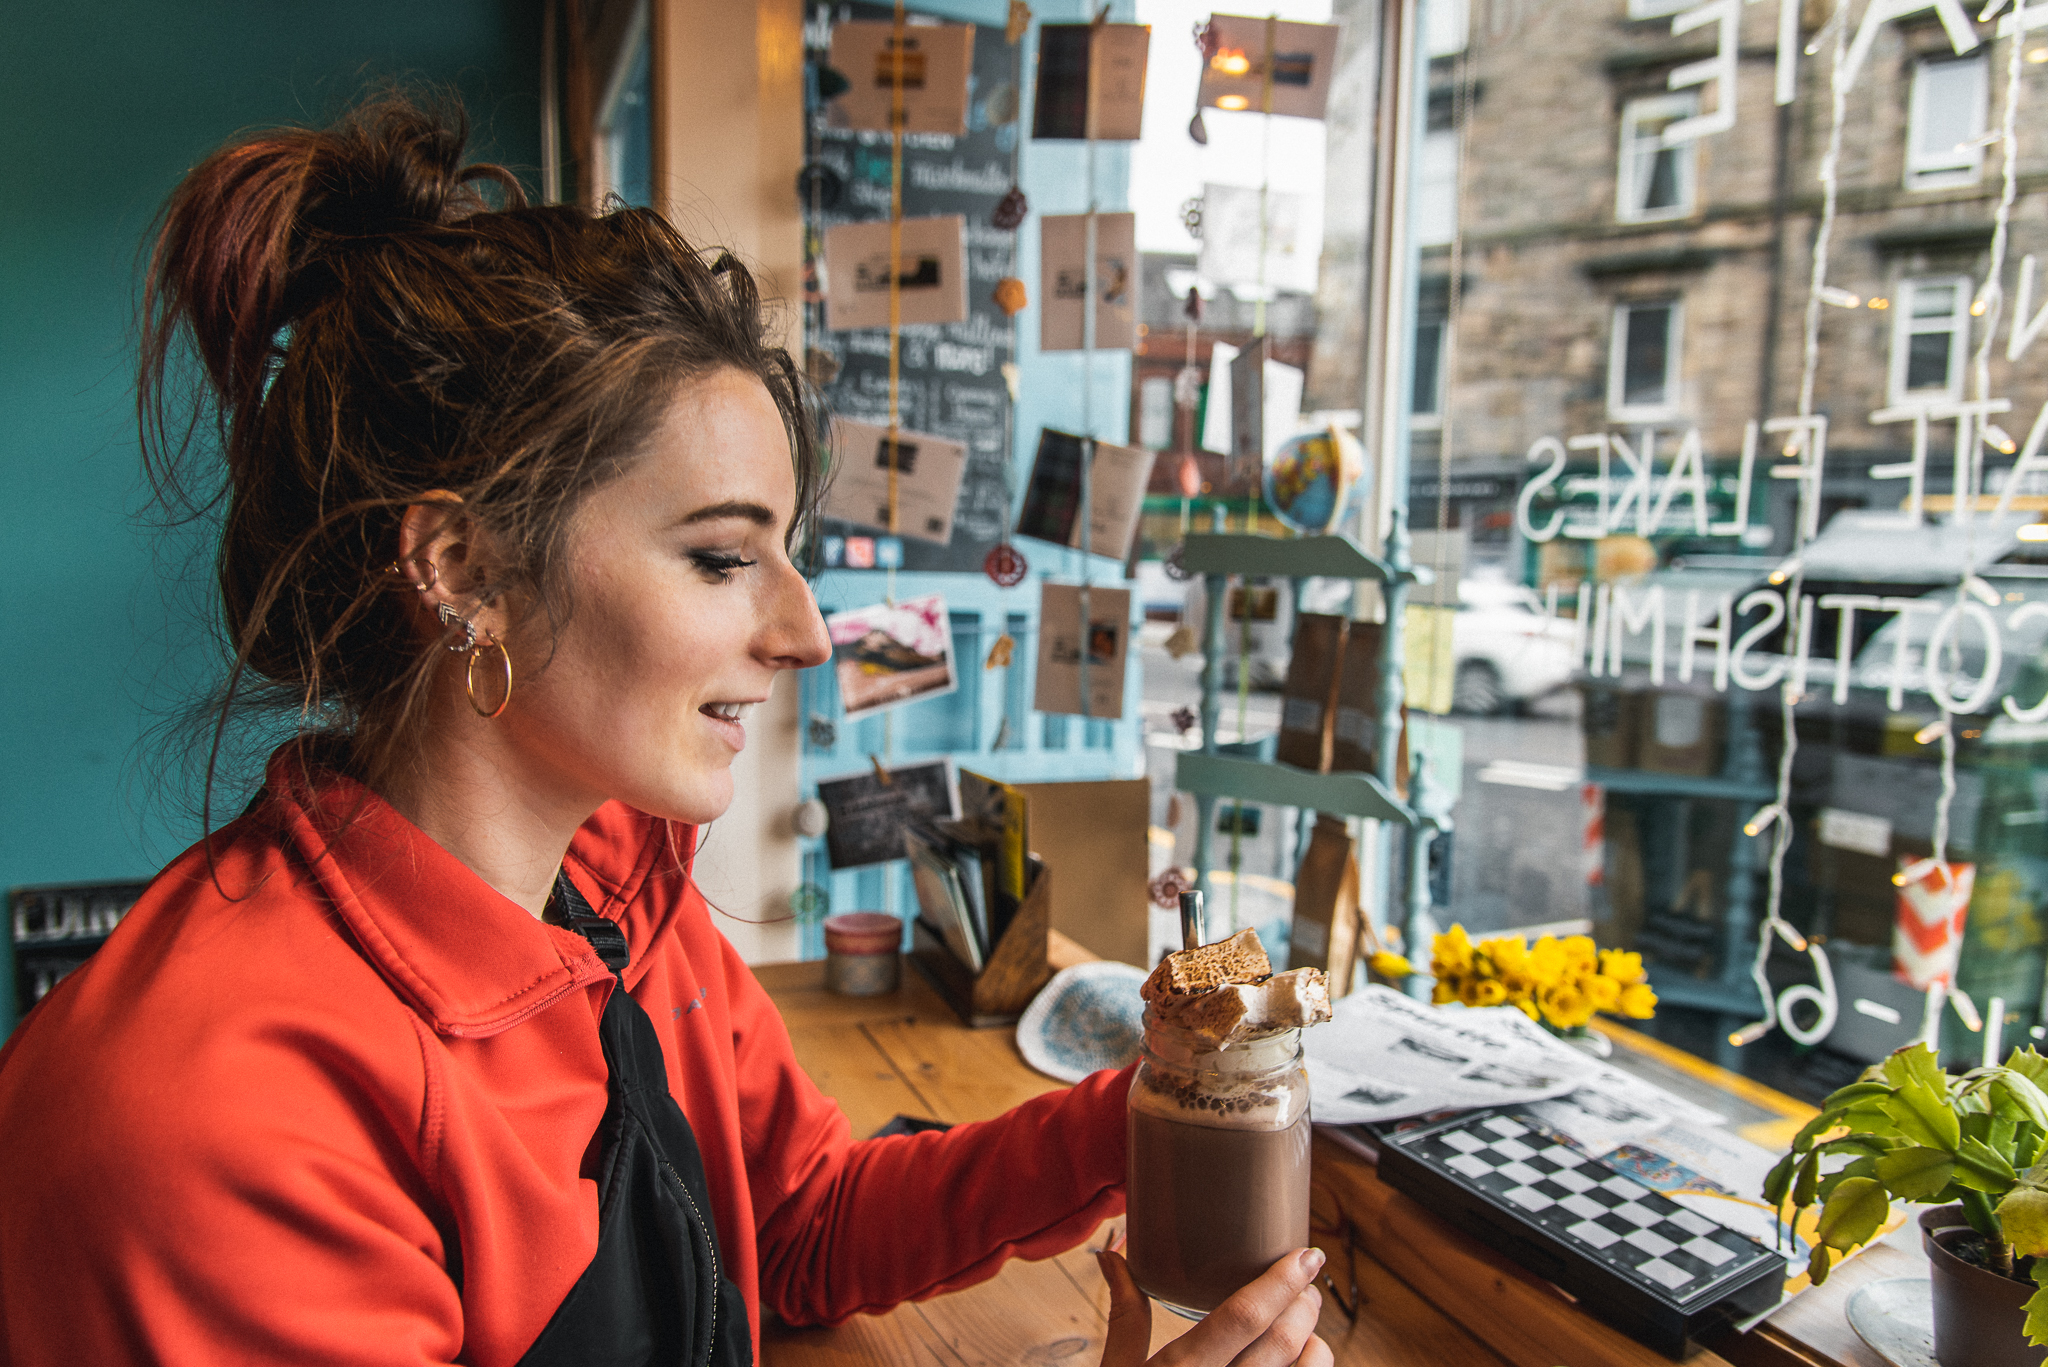 five of the most instagrammable places in edinburgh, the marshmallow lady, cafe, coffee shop, hot chocolate, tinyboots